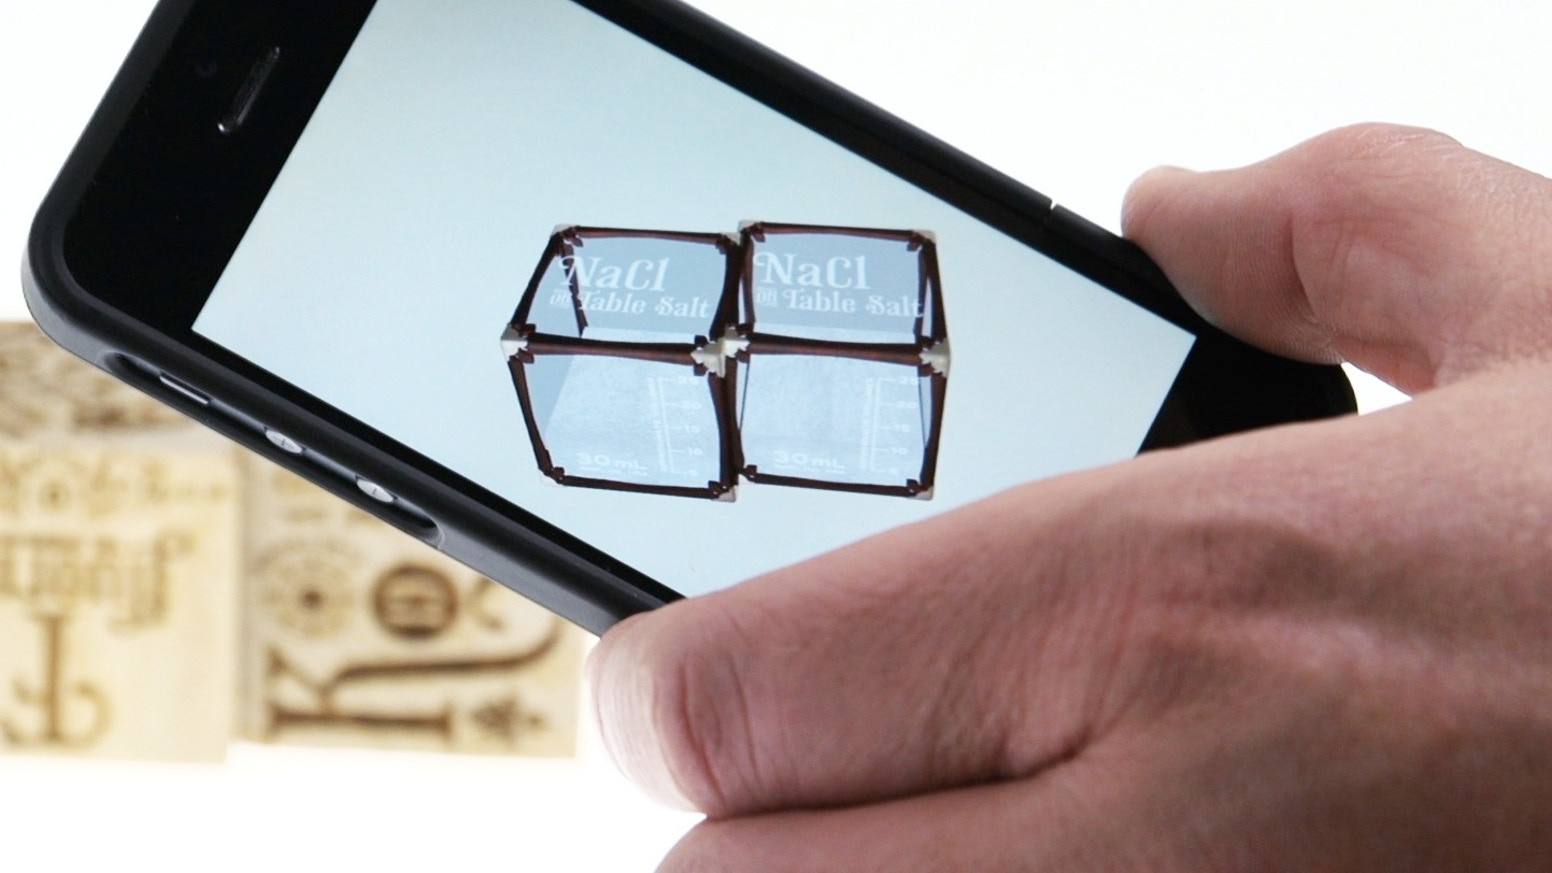 Elements 4d interactive blocks by daqri kickstarter part story part game part educational toy elements 4d interactive blocks offer a fun way to experience augmented reality urtaz Gallery